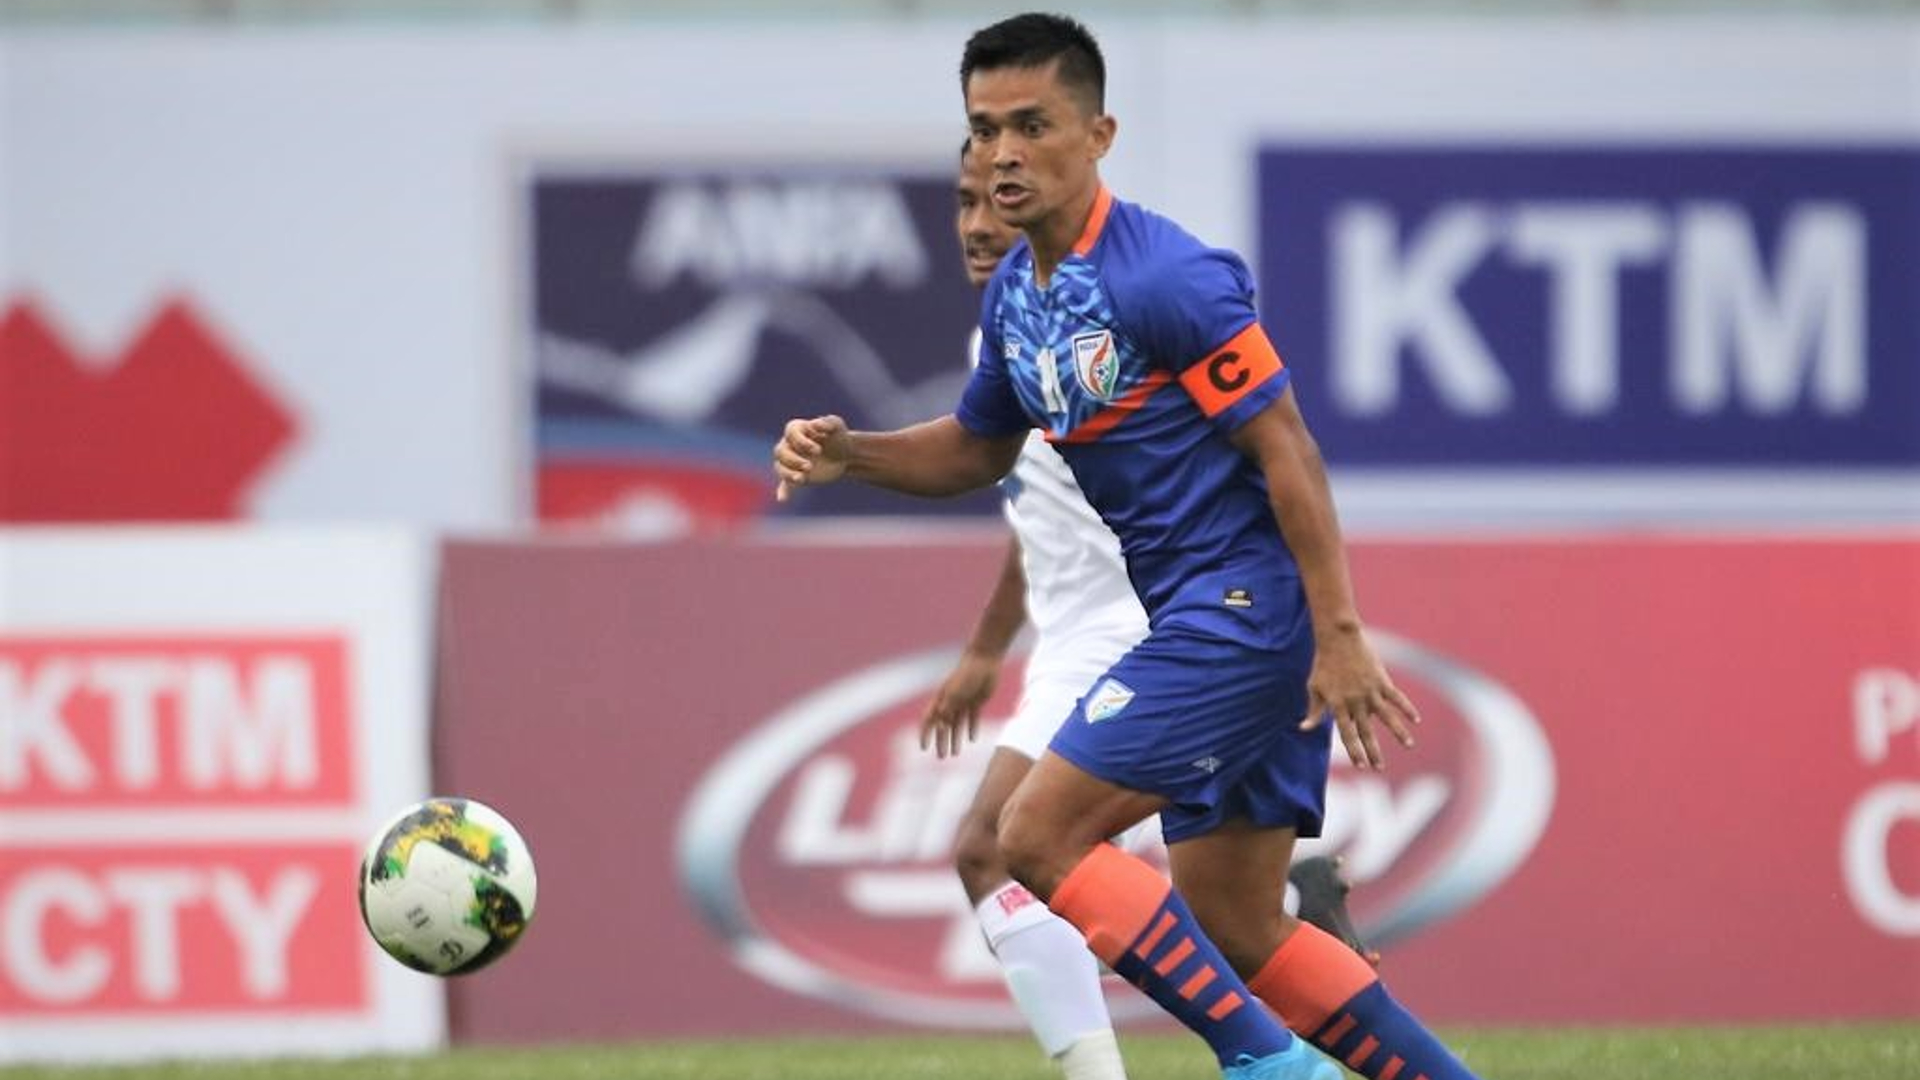 When was the last time Sunil Chhetri wasn't the Indian top scorer in an international tournament?